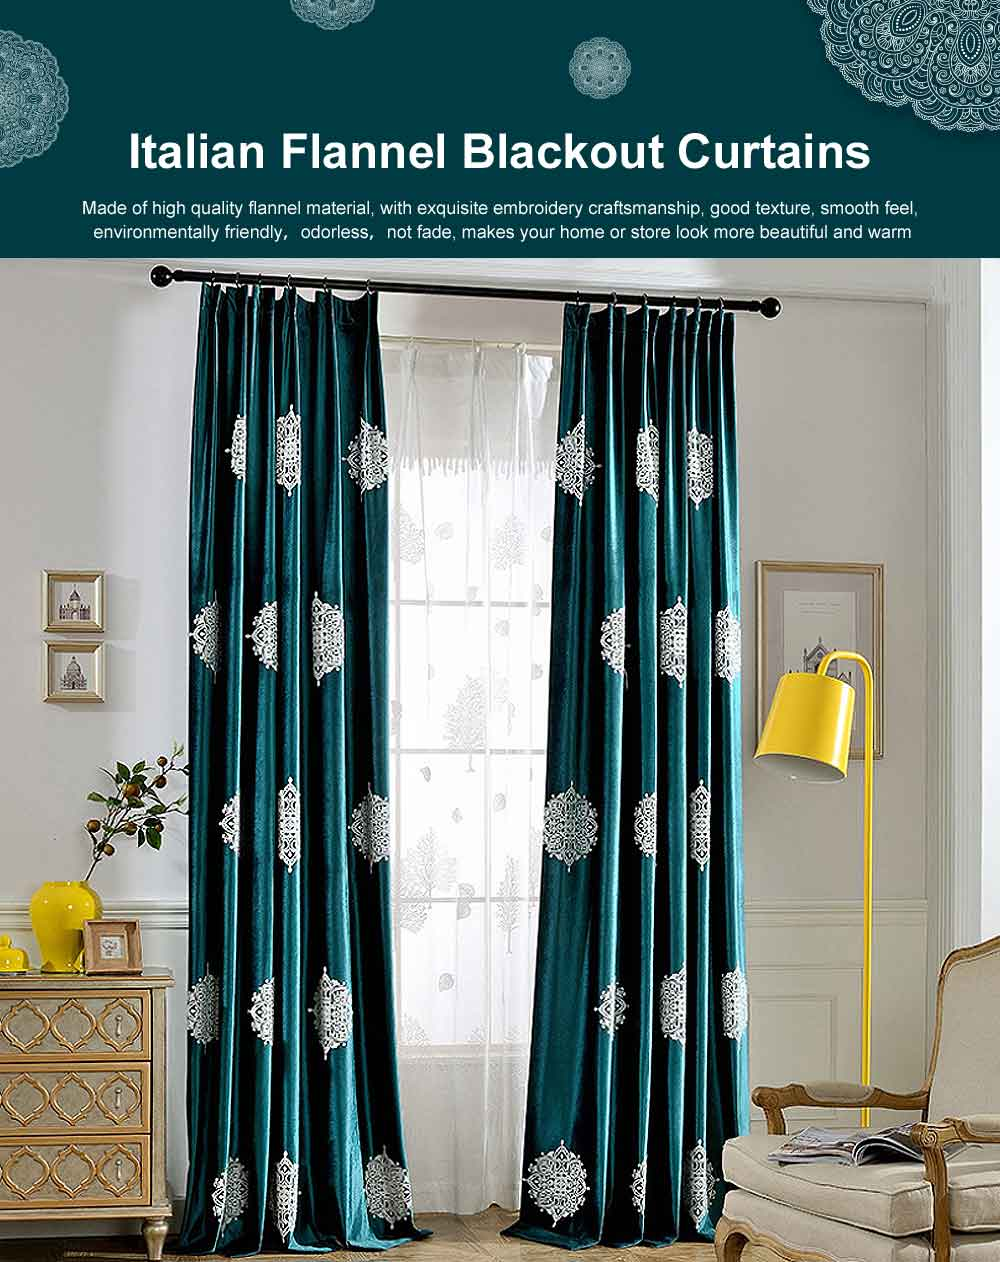 Fresh Dark Green Curtains, Blackout Curtains for Living Room, Bedroom, Italian Flannel Blackout Curtains 0